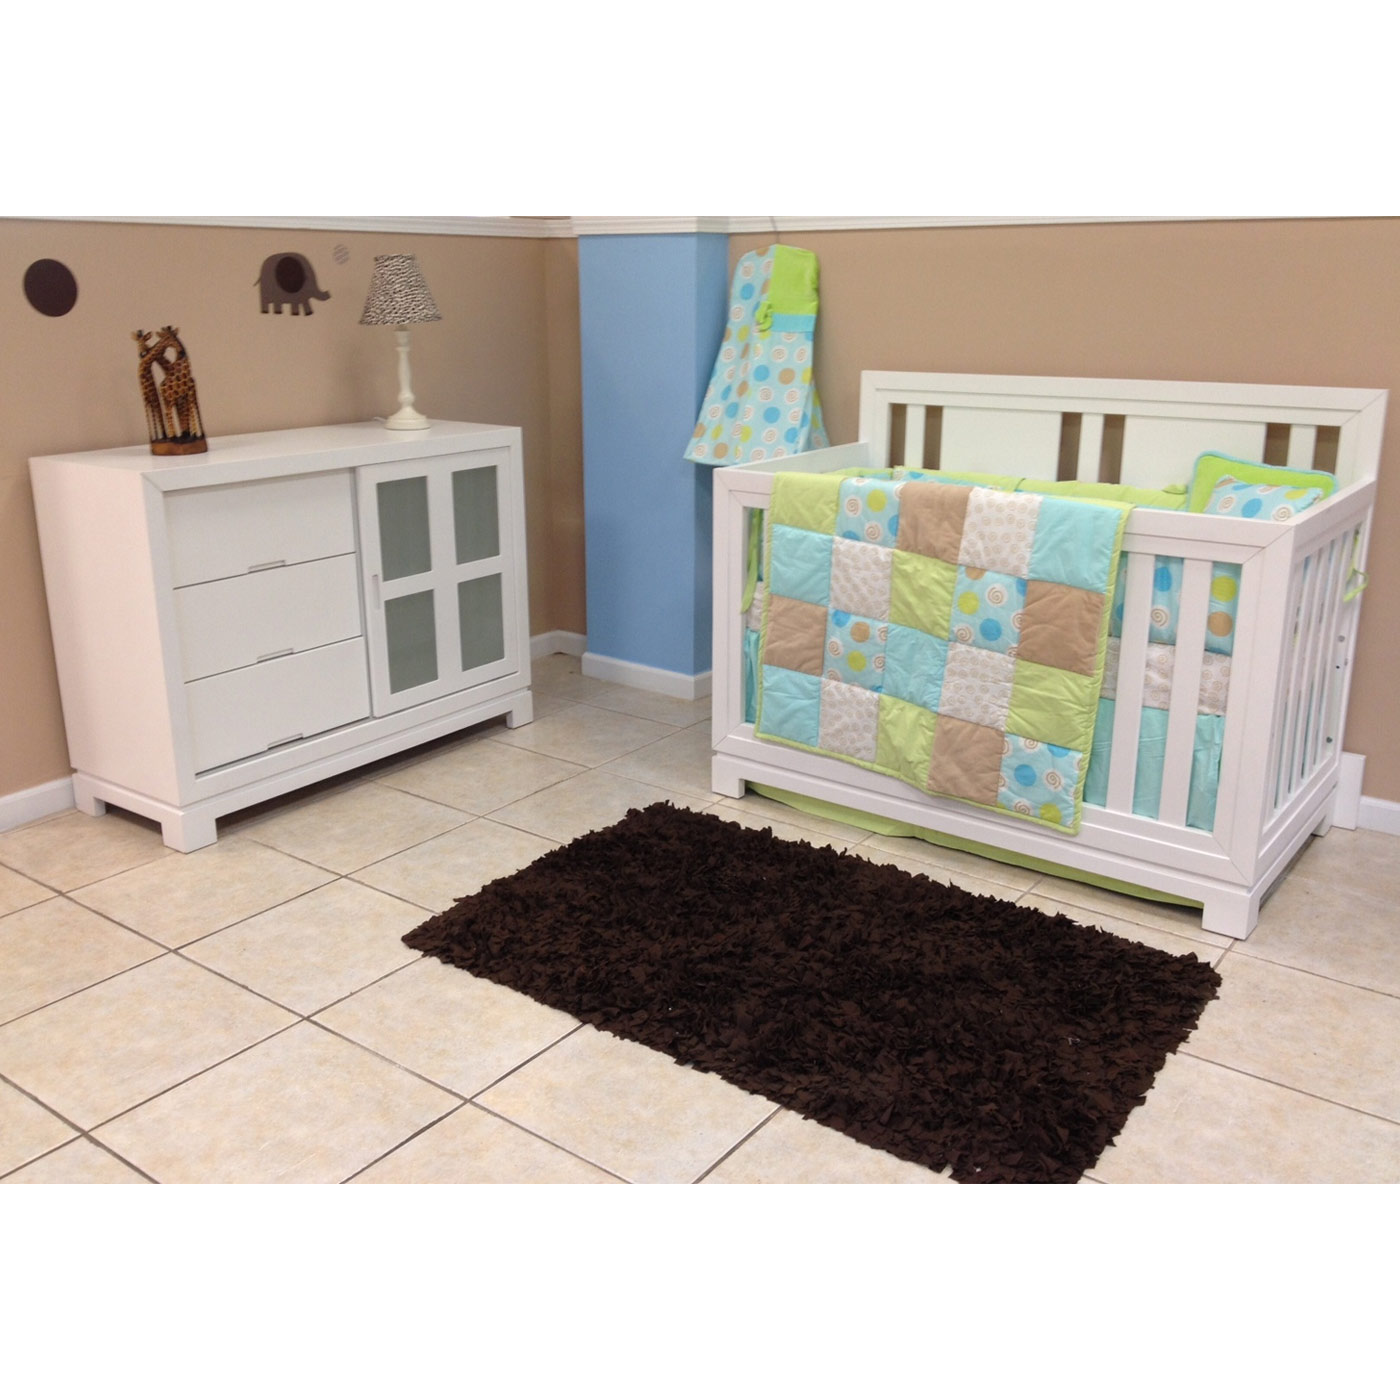 eden baby melody  in  convertible crib in white free shipping -